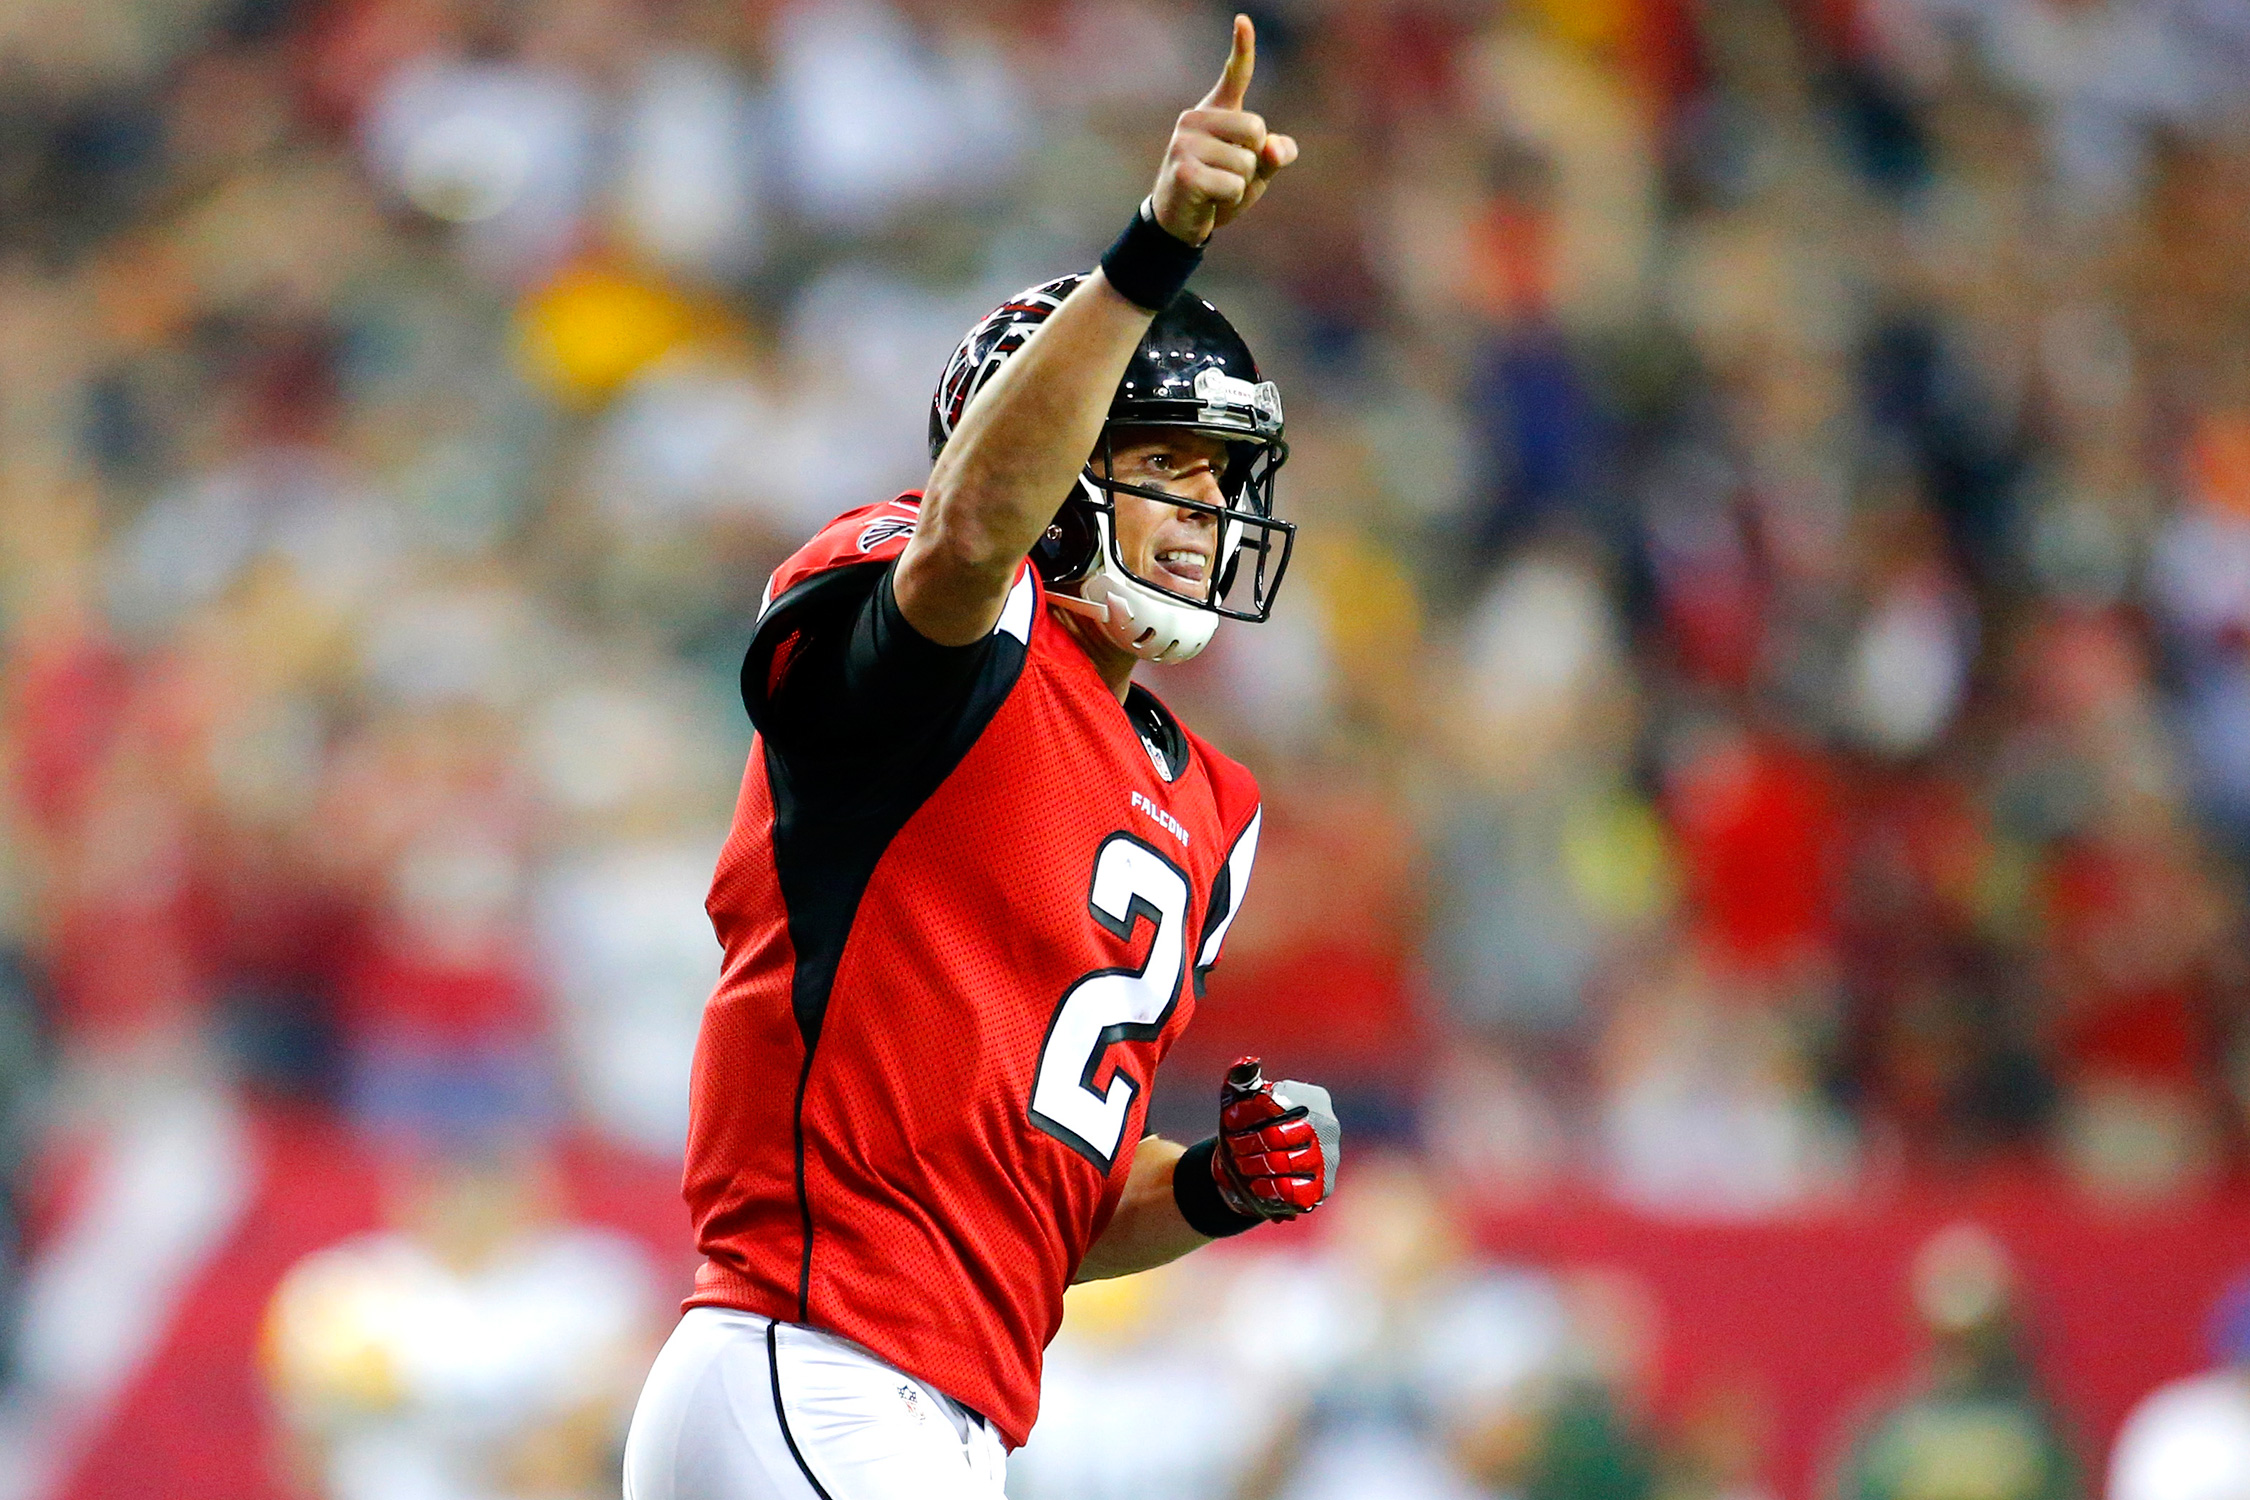 Ryan is leading the league in passing yards (2,636) and touchdowns (19), averaging 9.45 yards per attempt as Atlanta shot out of the gate as one of the year's most surprising teams.